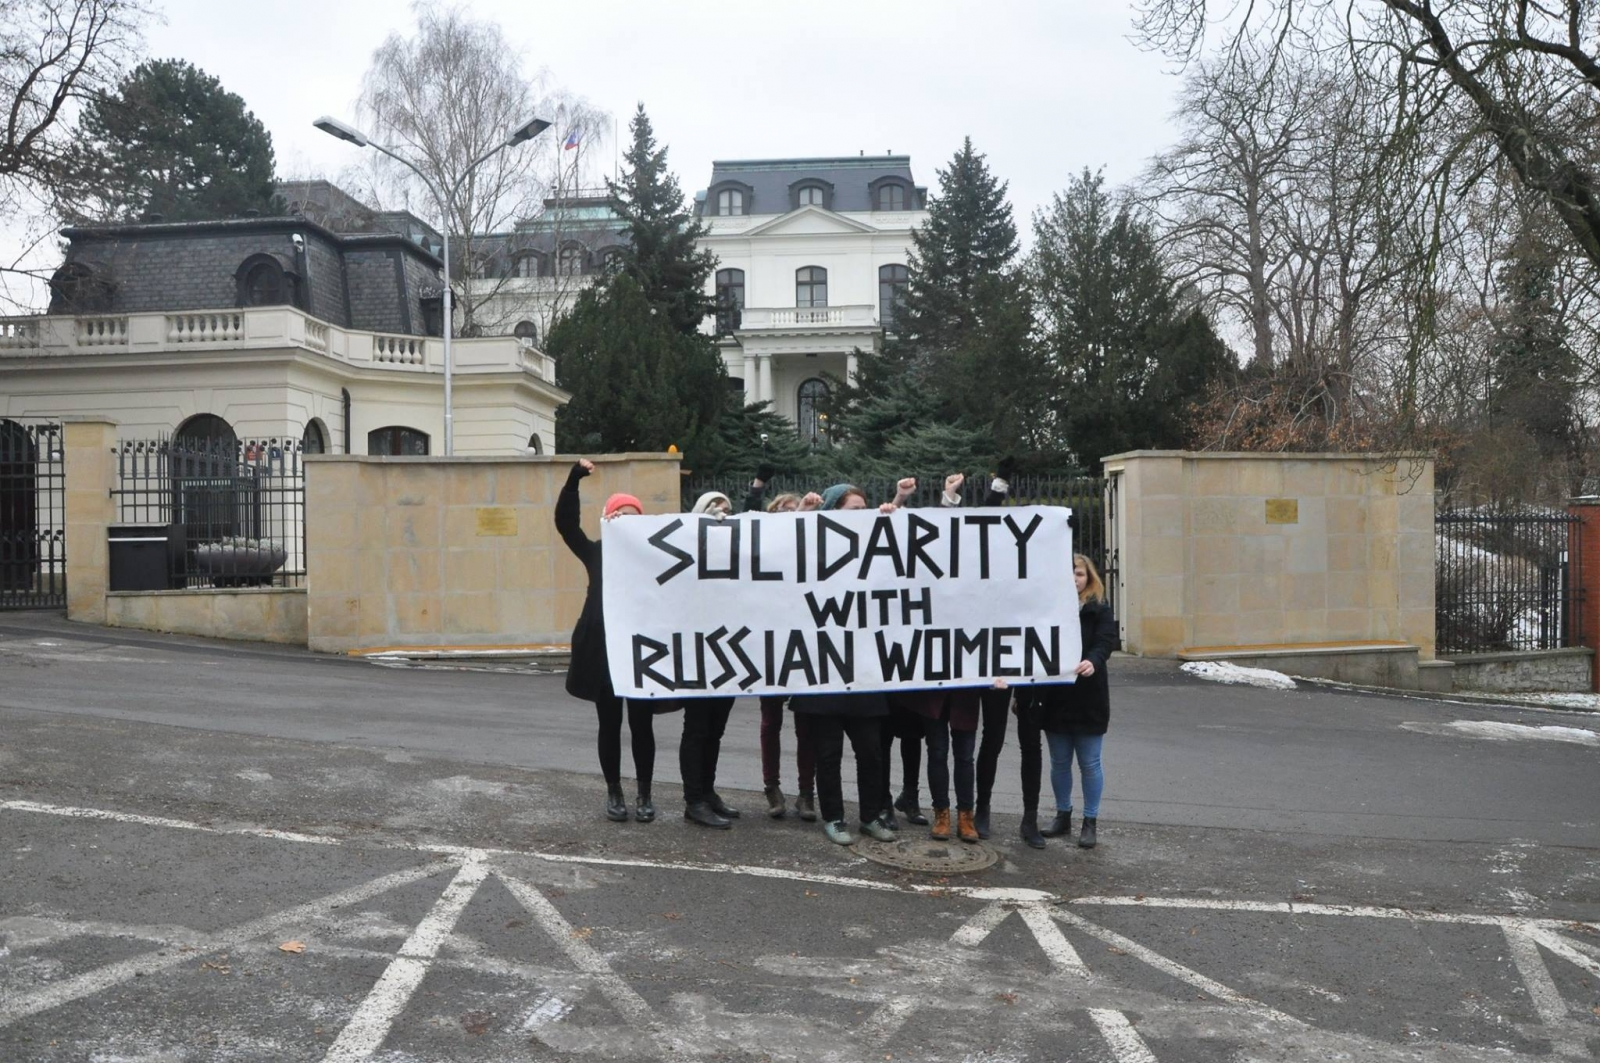 Solidarity with Russian women